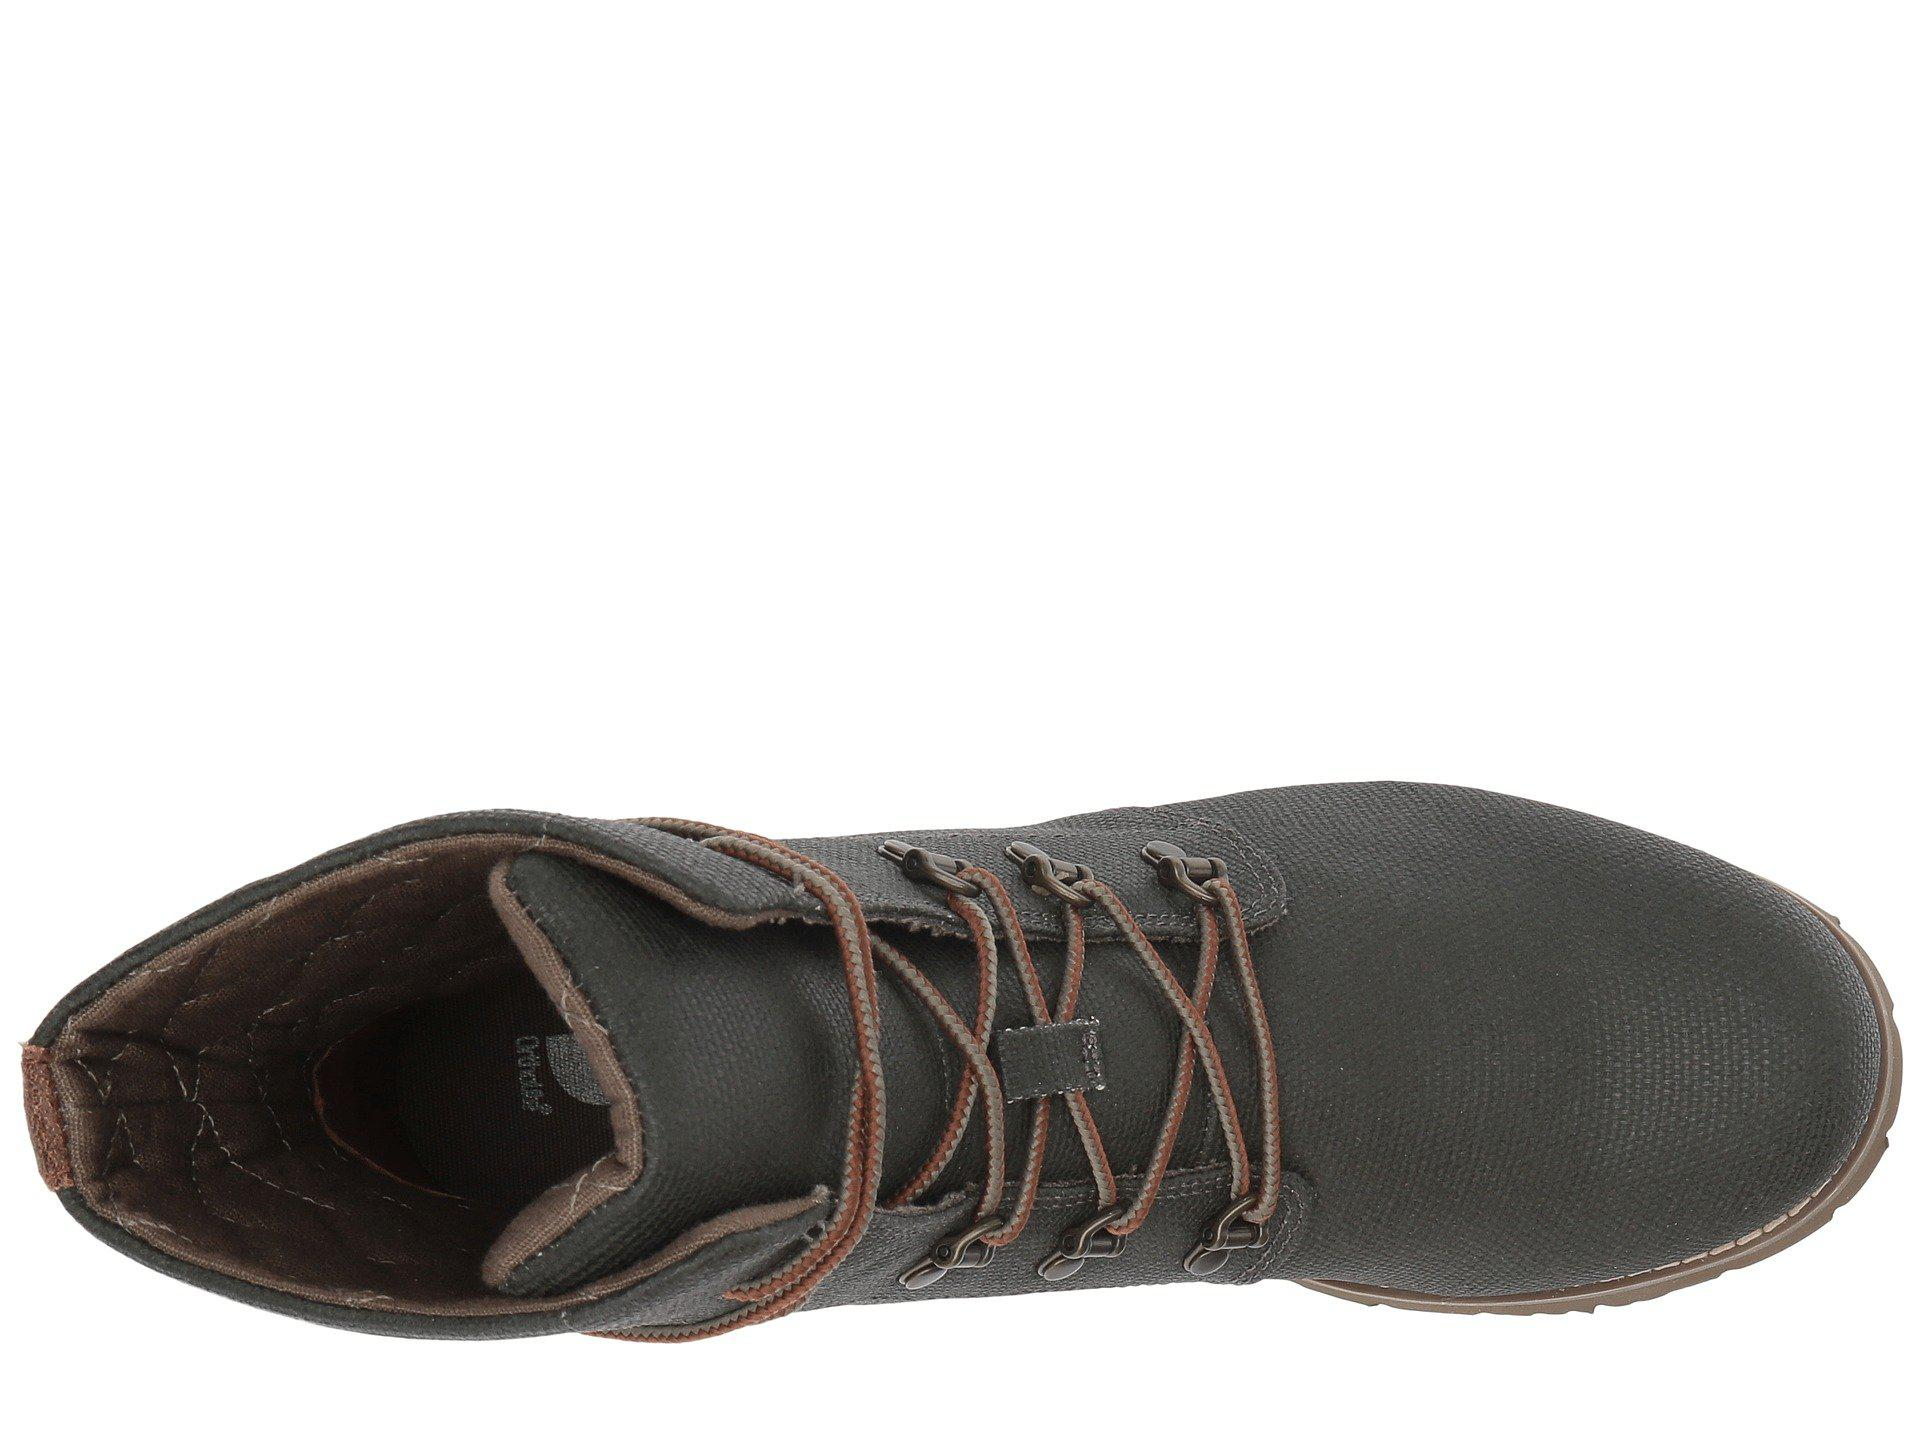 a614f2b1a The North Face Brown Ballard Lace Ii Coated Canvas